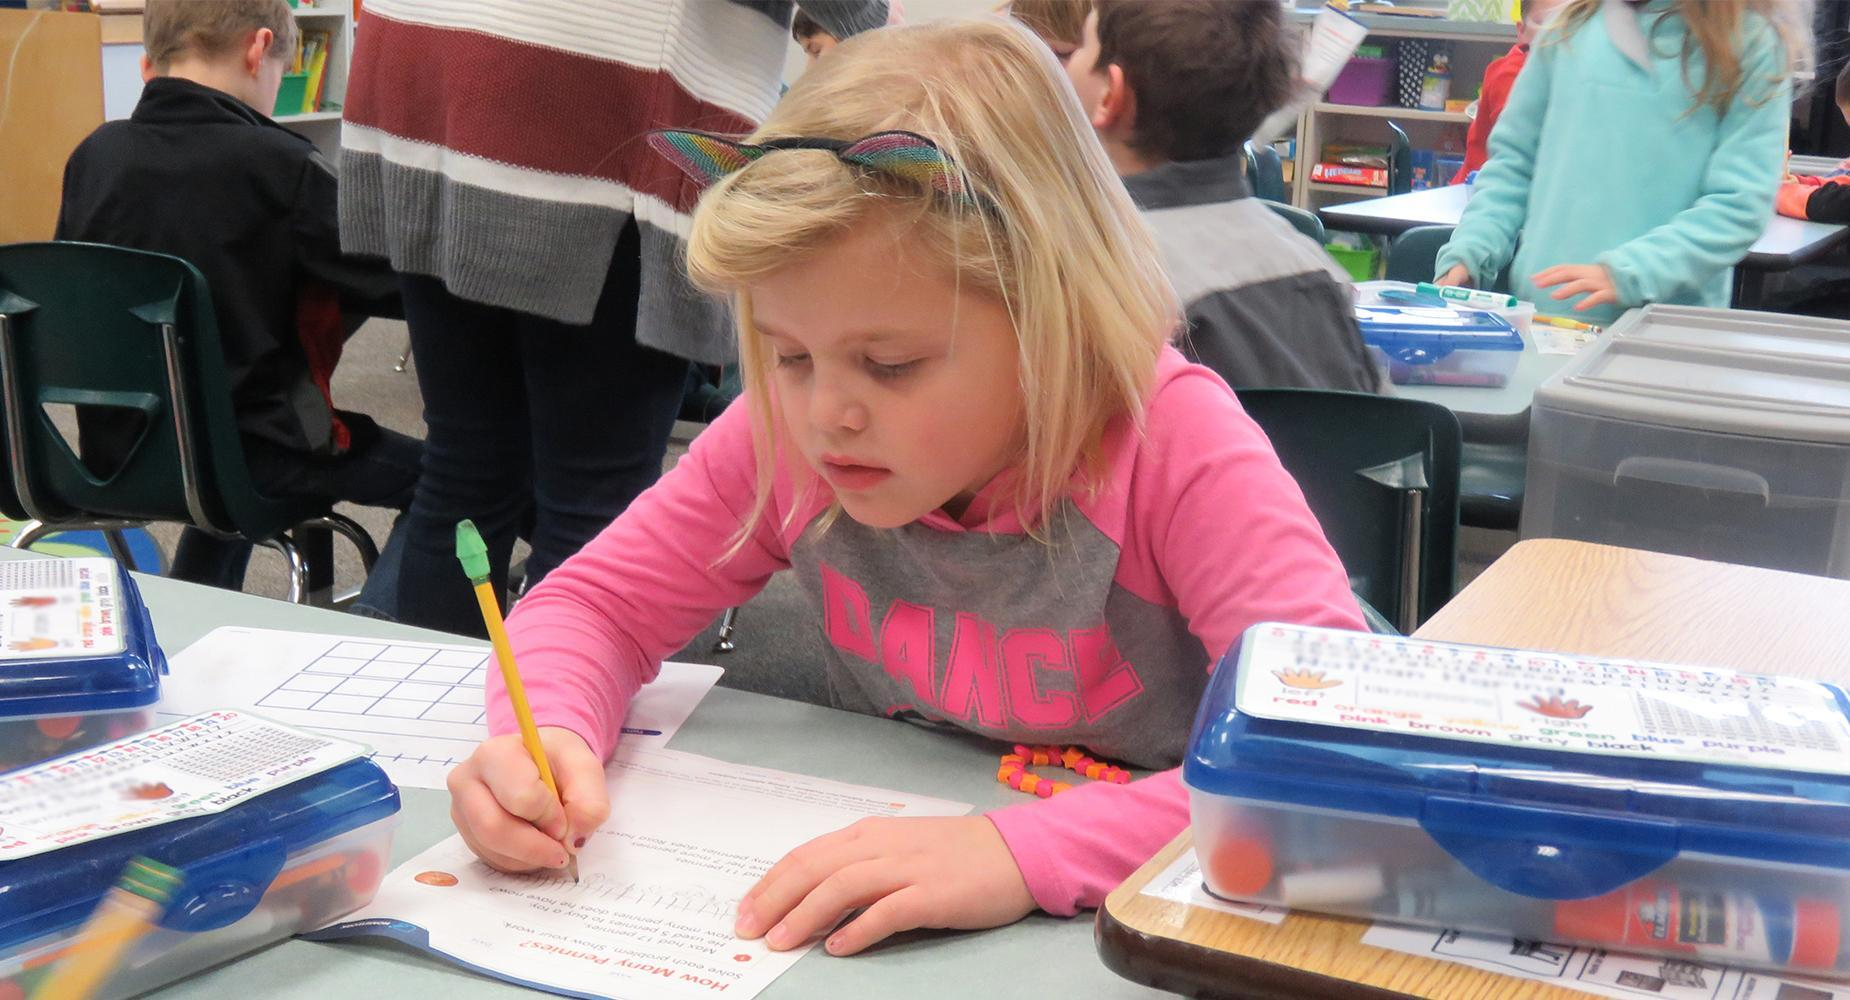 A girl in a bright pink shirt works on a worksheet.